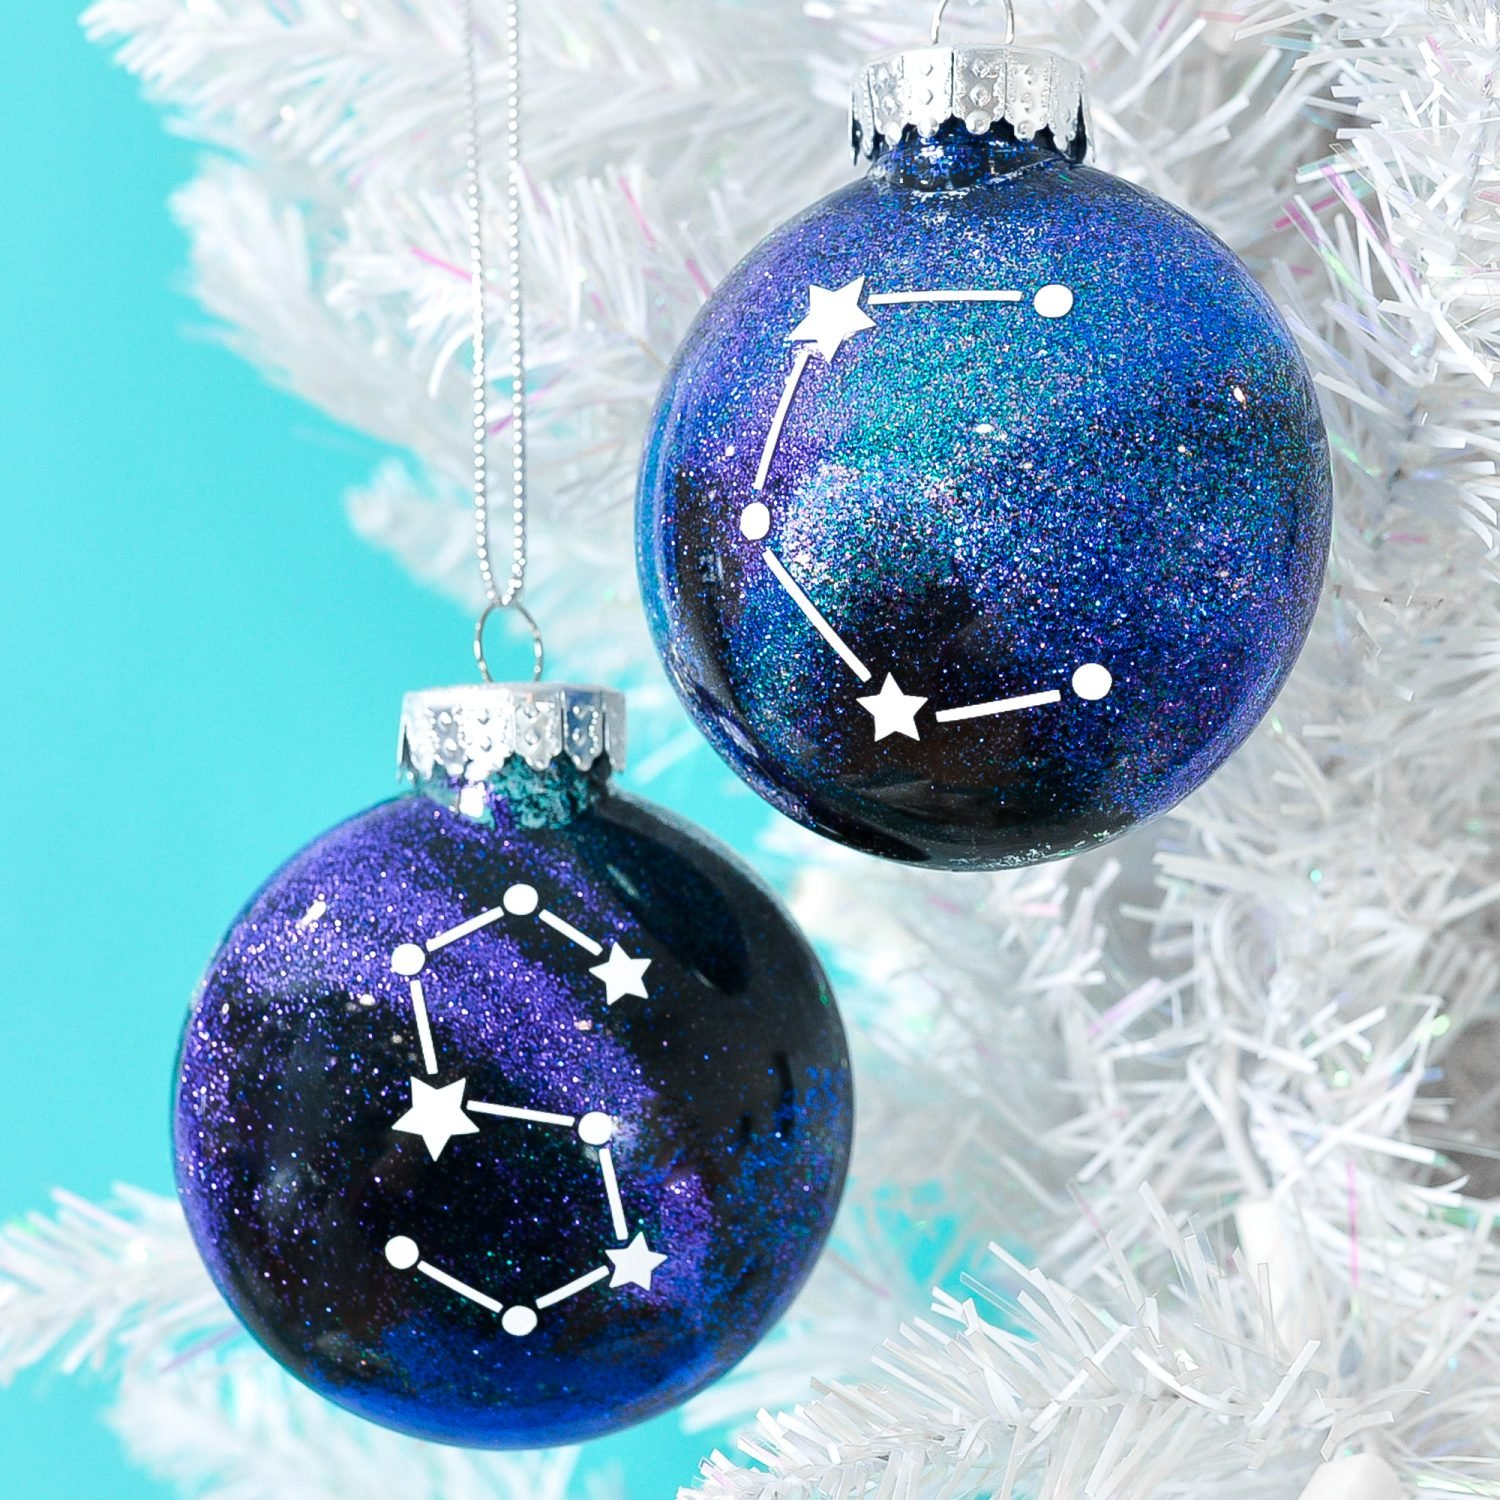 Finished constellation glitter ornaments hanging from white Christmas tree